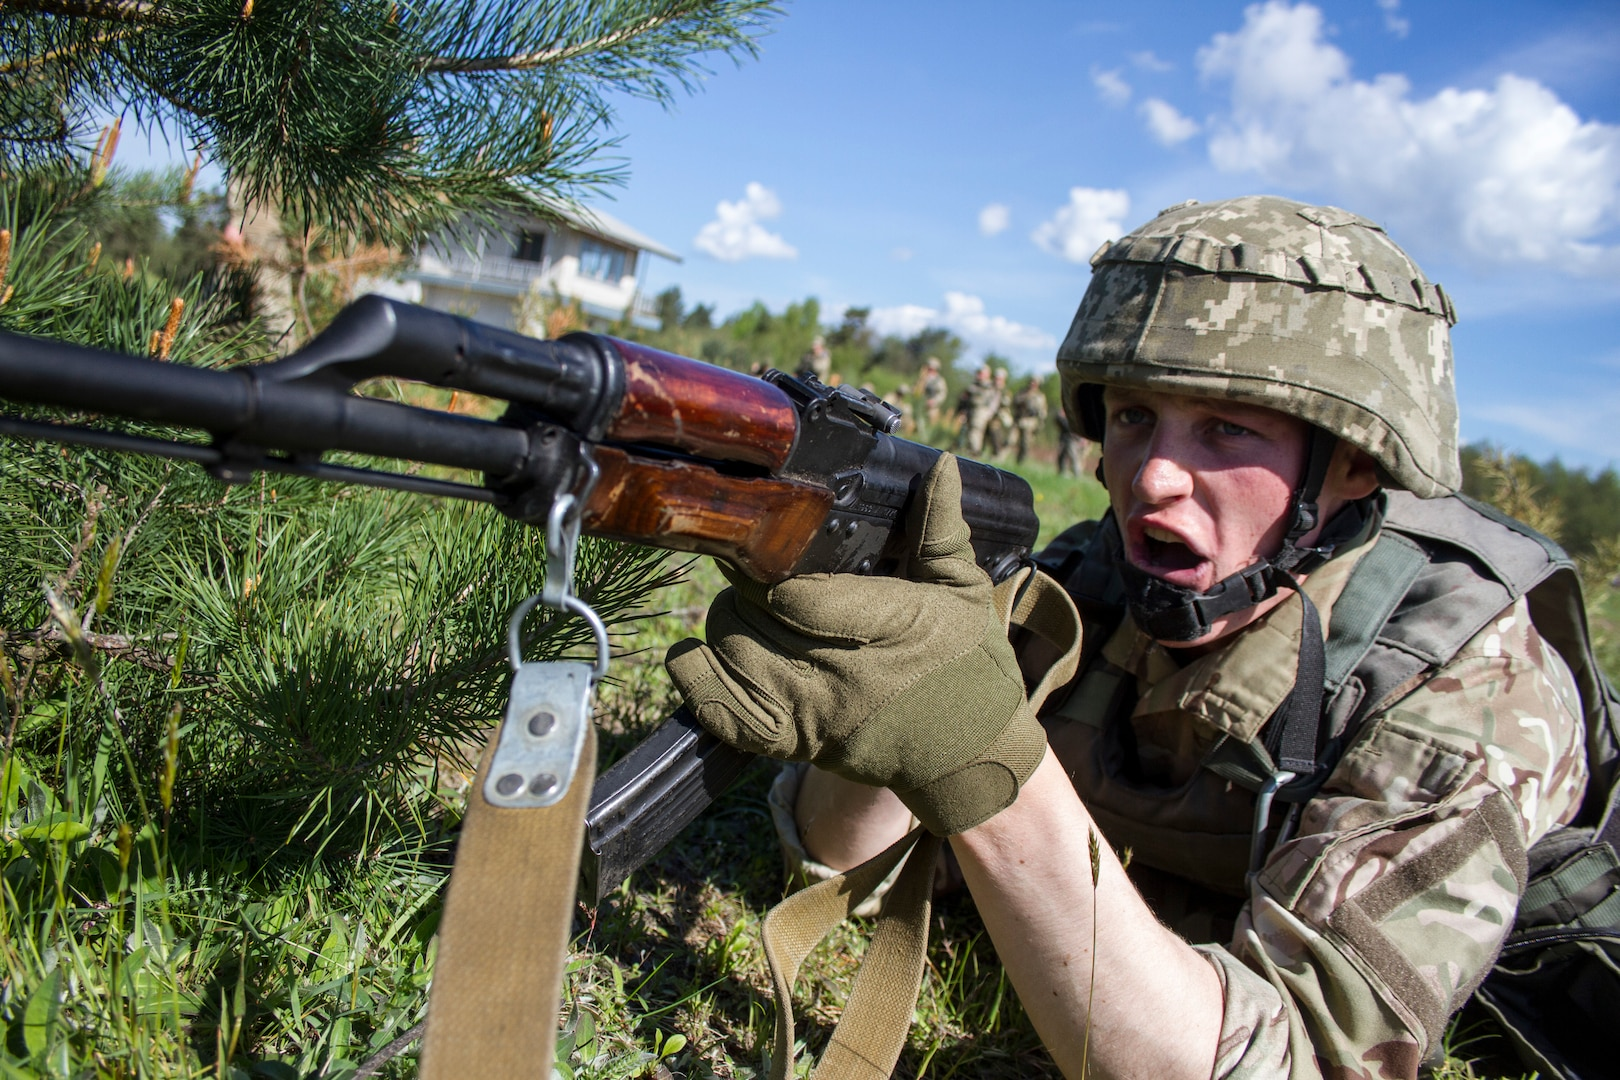 Mentored by Army's 45th Infantry Brigade Combat Team, Ukrainian soldier calls out to fellow soldier during training at Yavoriv Combat Training Center, International Peacekeeping and Security Center, near Yavoriv, Ukraine, May 15, 2017 (U.S. Army/Anthony Jones)